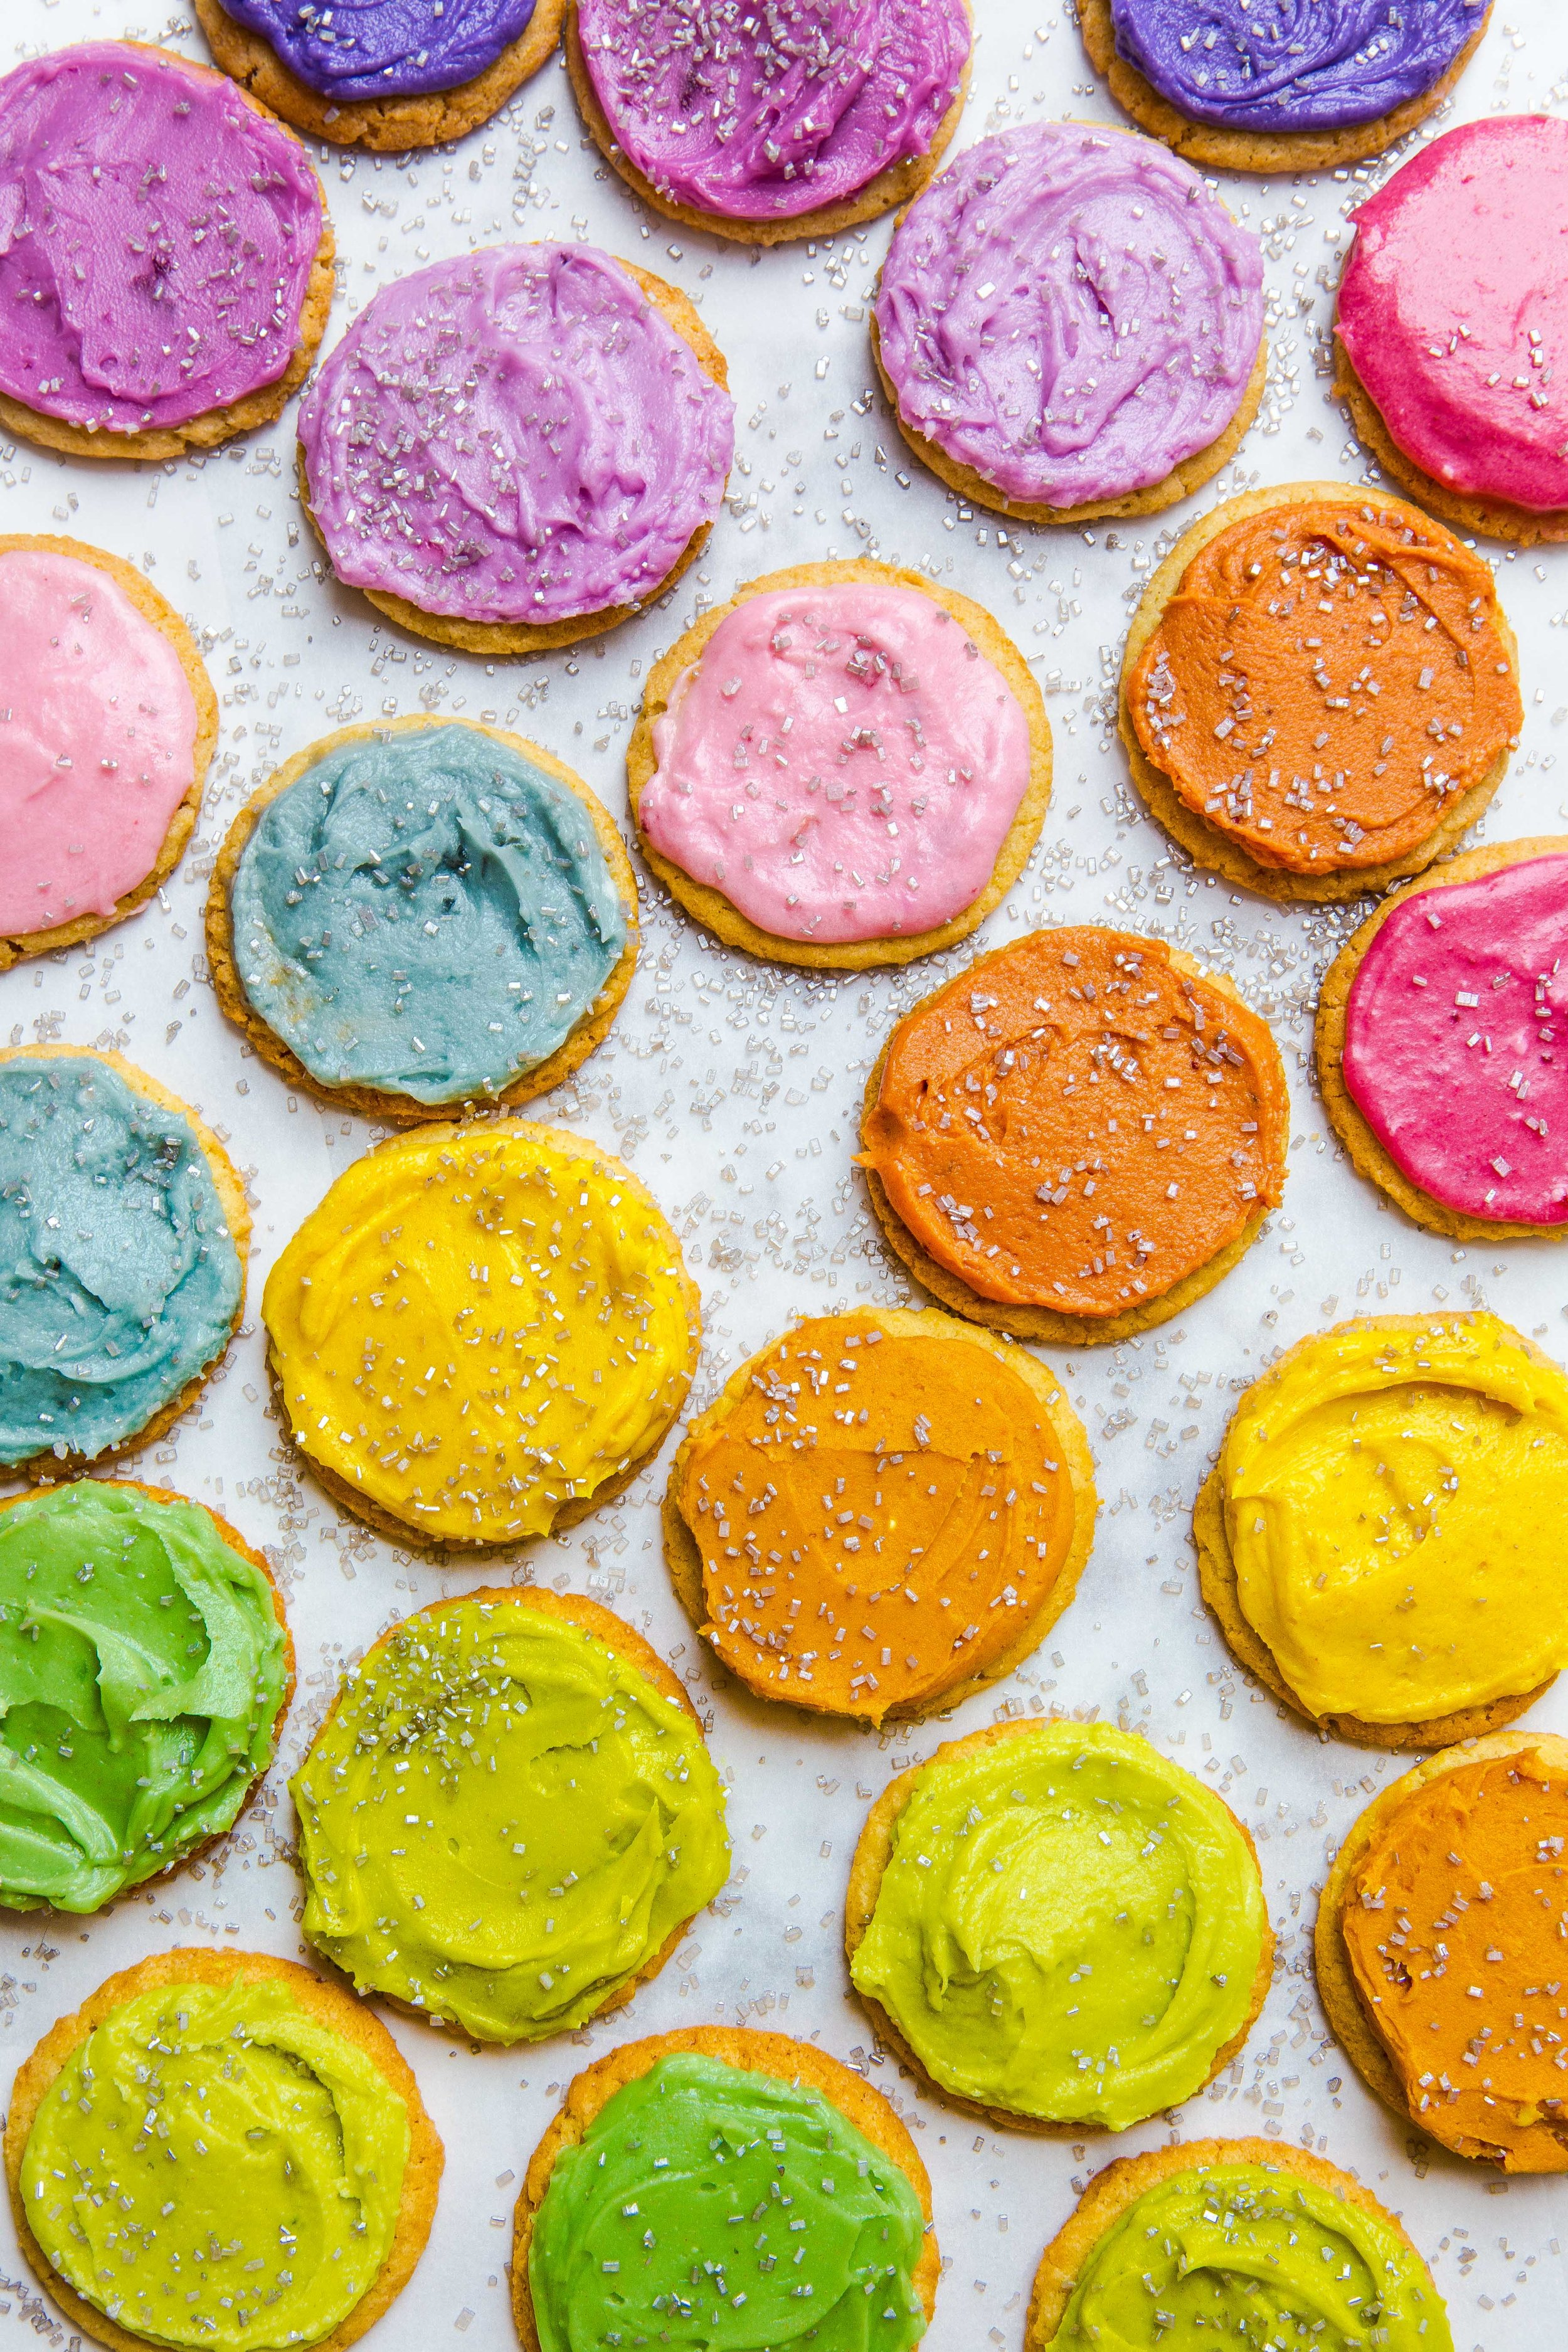 PS. If you don't like using regular food coloring check out my  Ultimate Guide to Making Vibrant Natural Dye Free Food Coloring & Frosting ! This photo shows off all of the colors that you can make using my recipe! :)